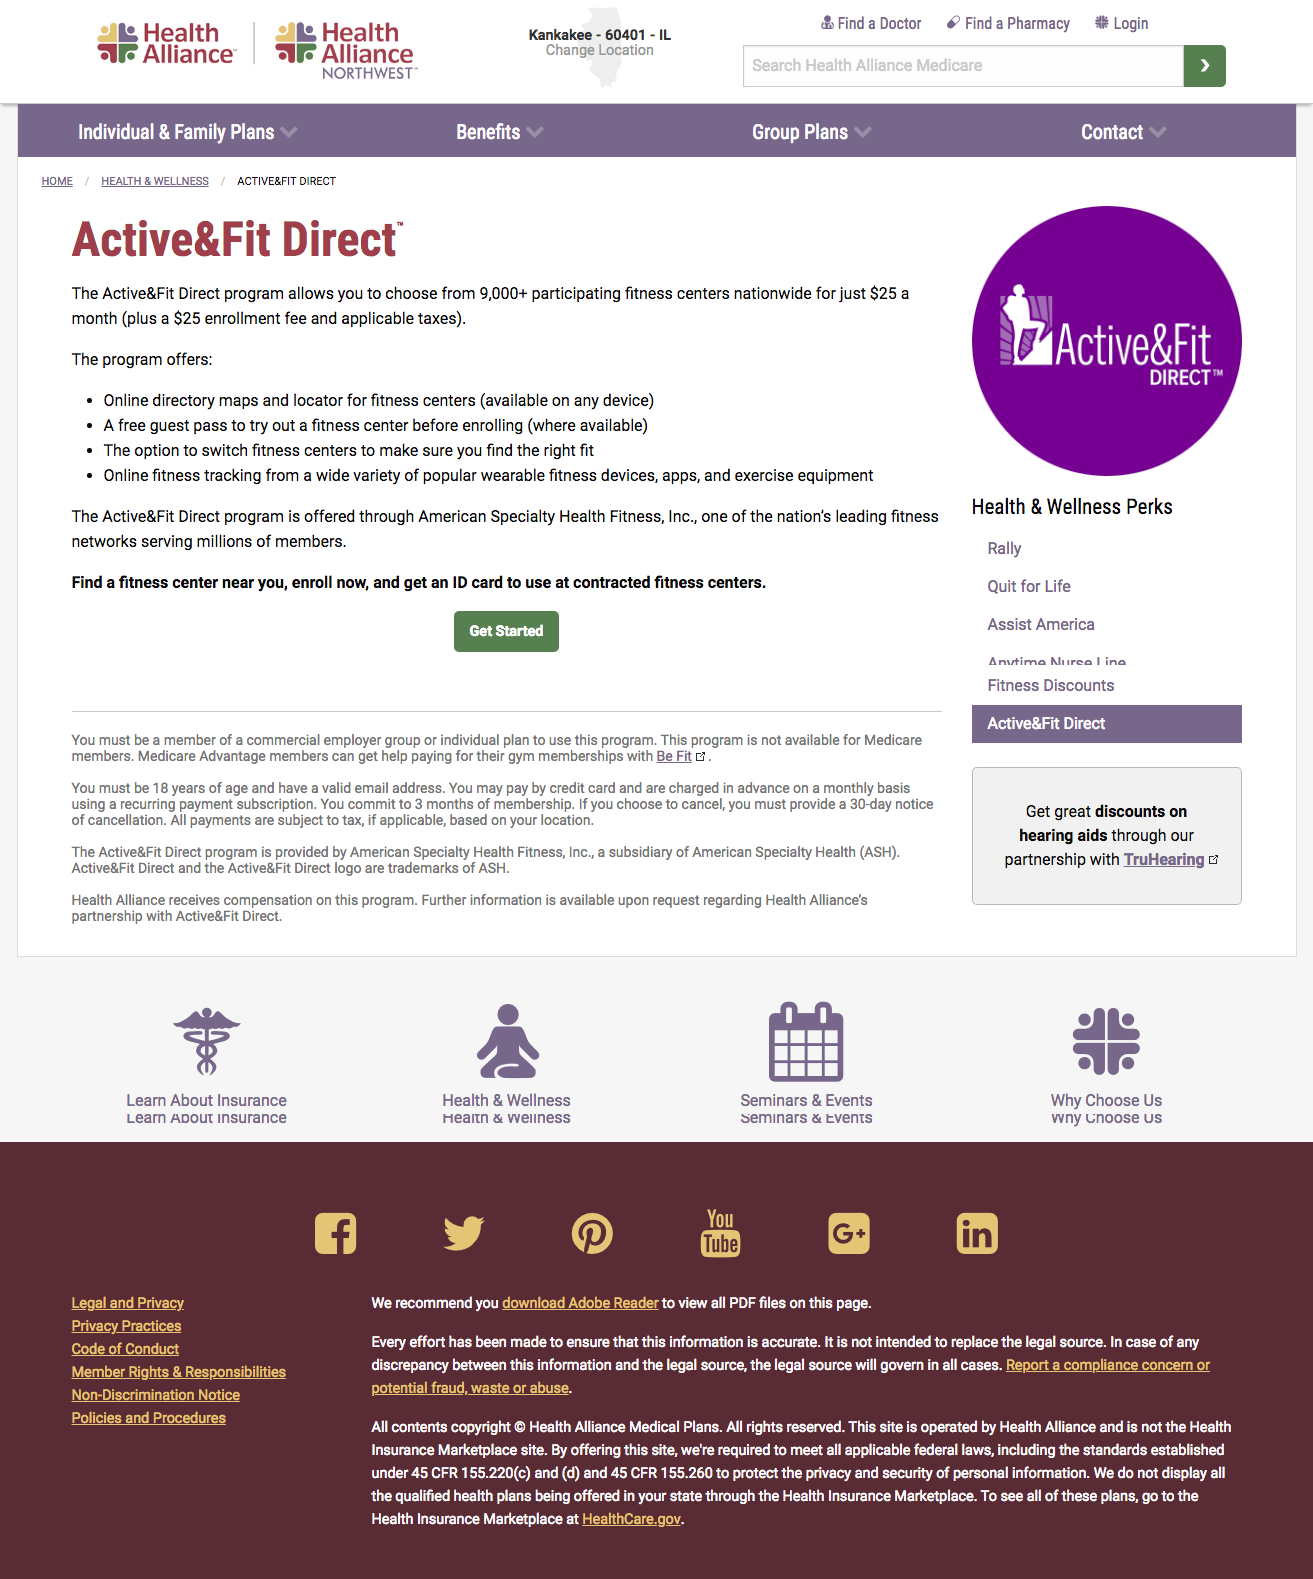 Active&FitDirect landing page